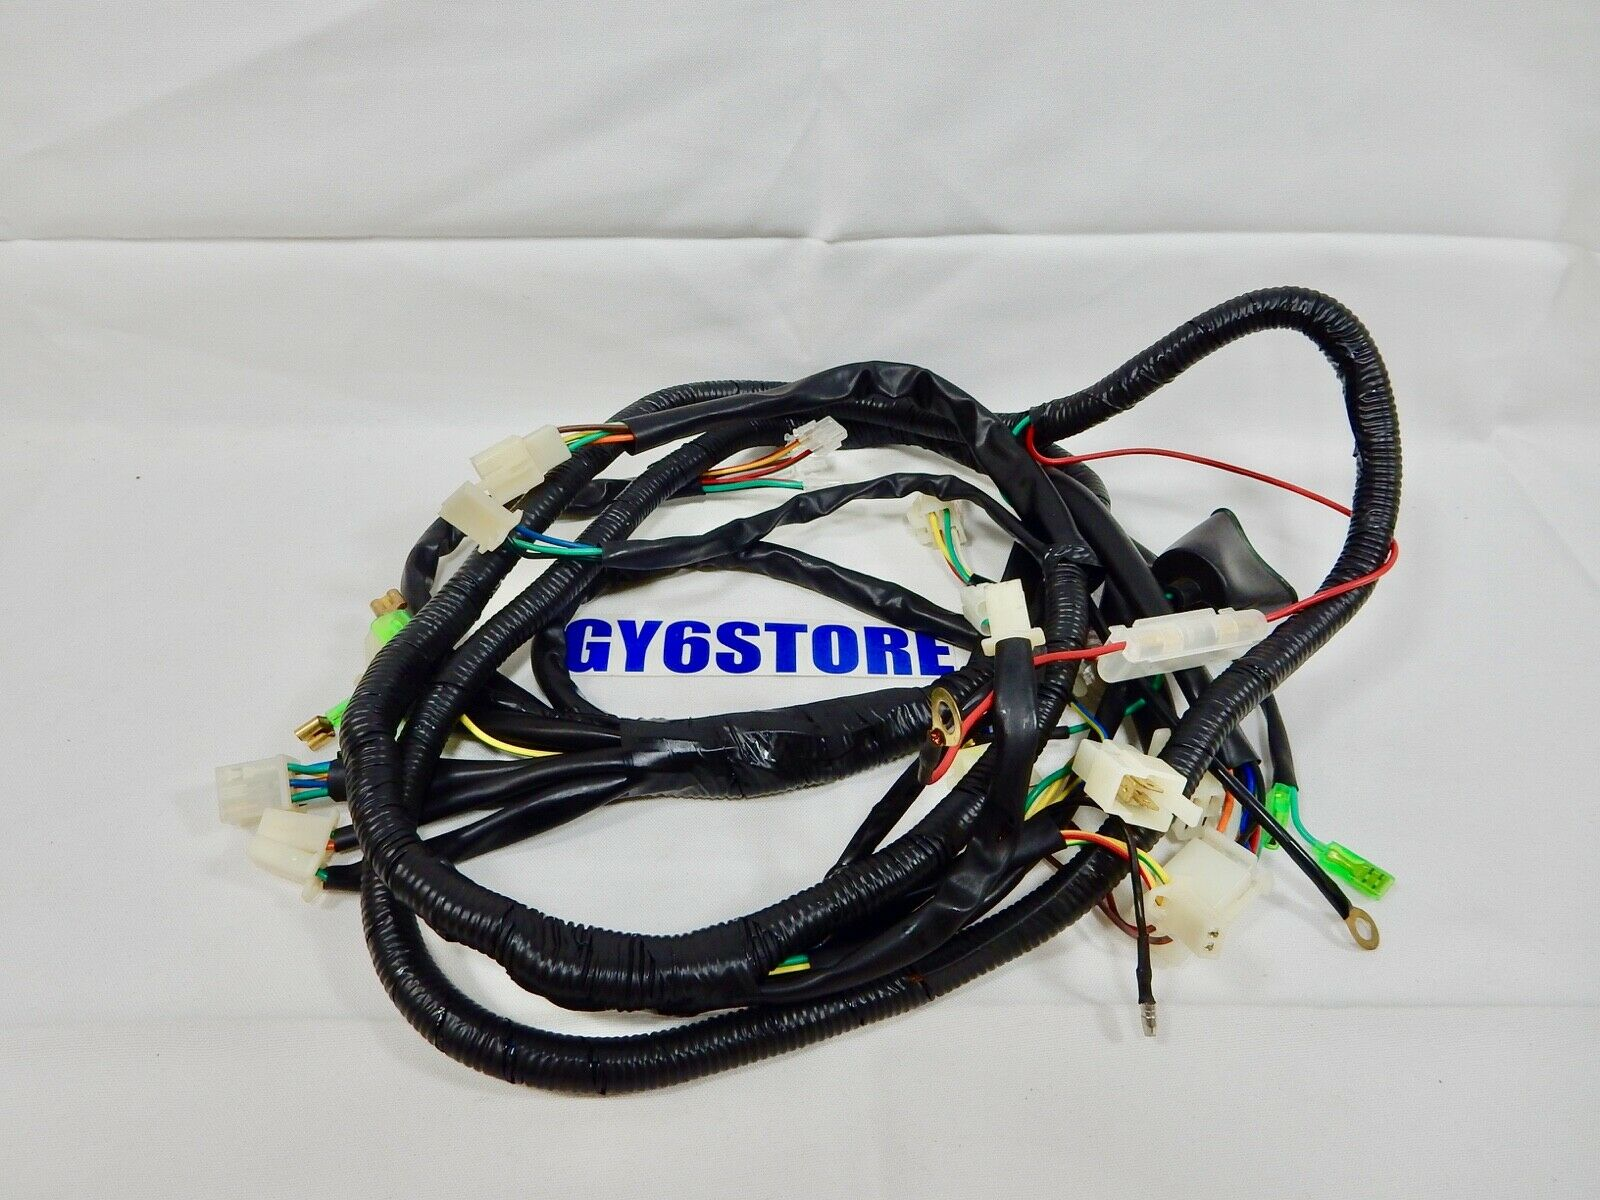 TAOTAO LANCER 150cc SCOOTER COMPLETE WIRING HARNESS *NEW* 1 of 1Only 1  available ...